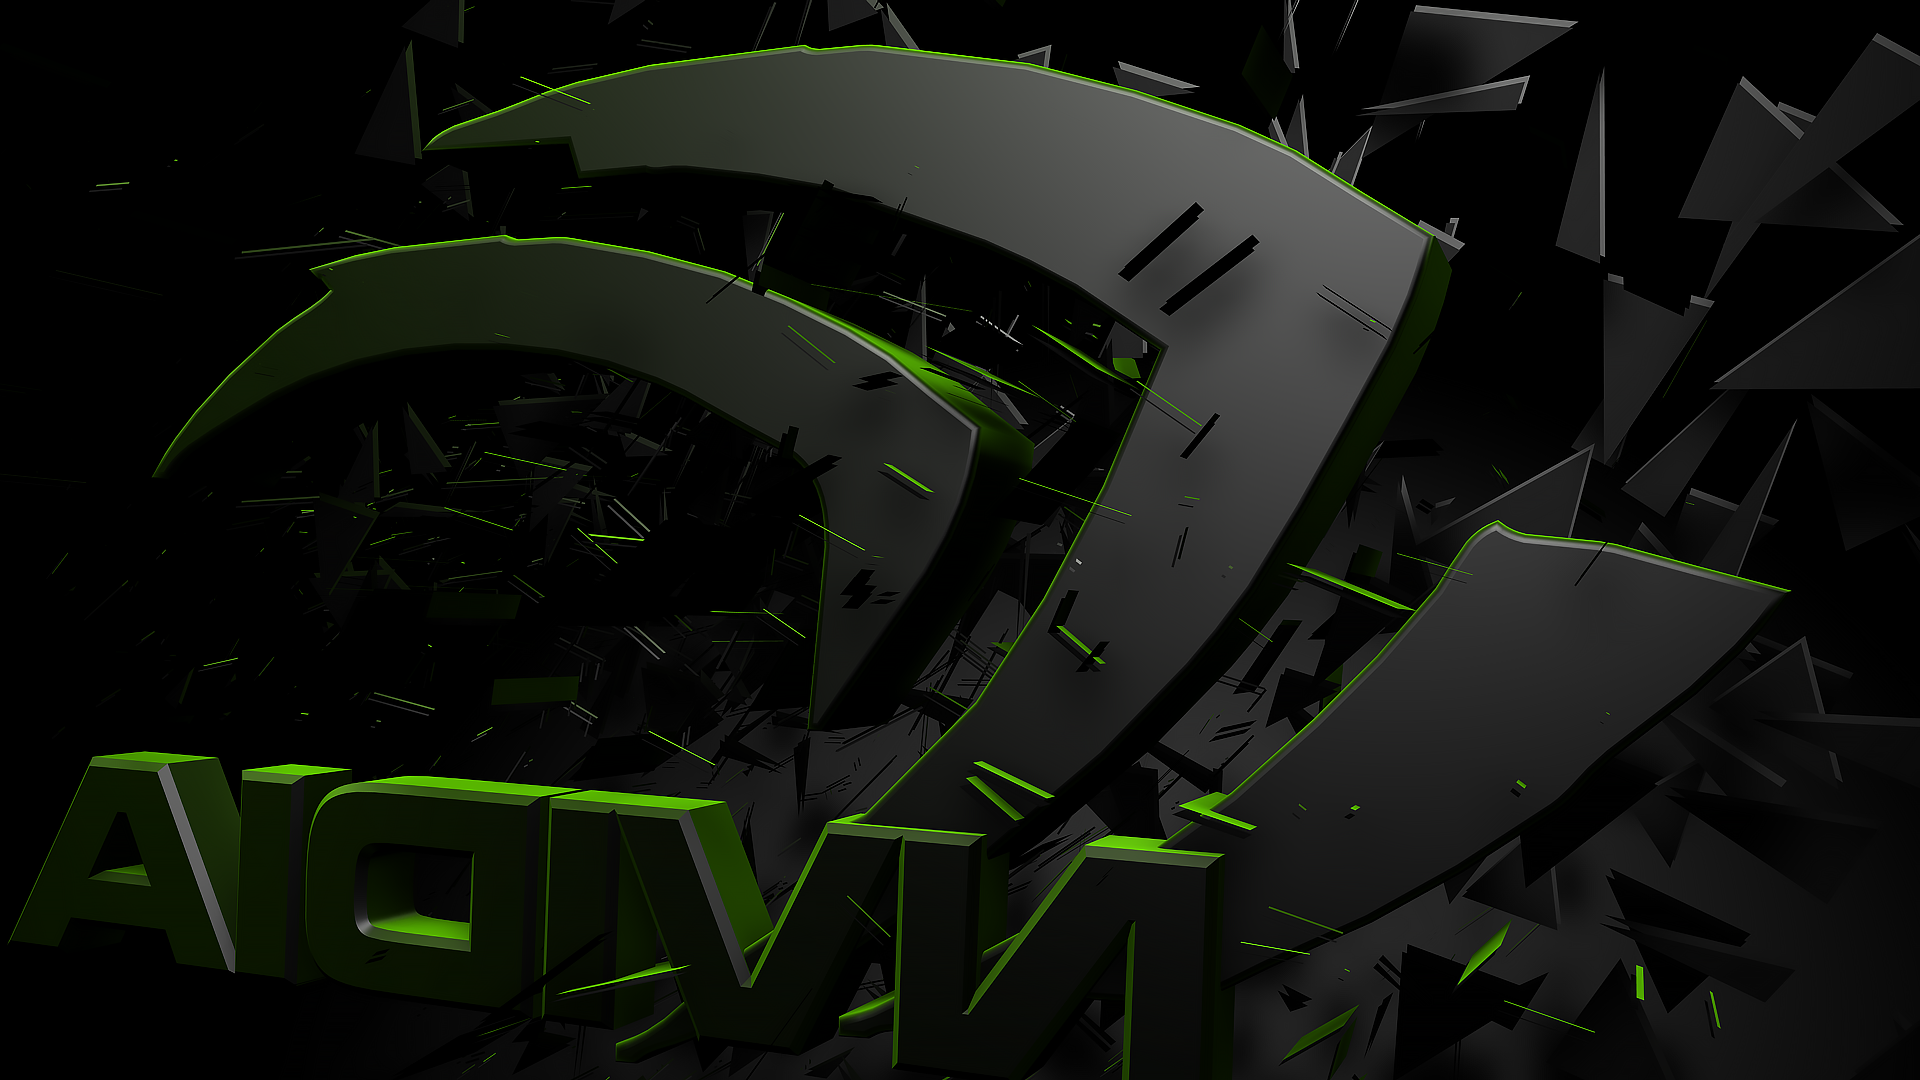 NVIDIA Wallpaper Wallpapers Browse HD Wallpapers Pinterest